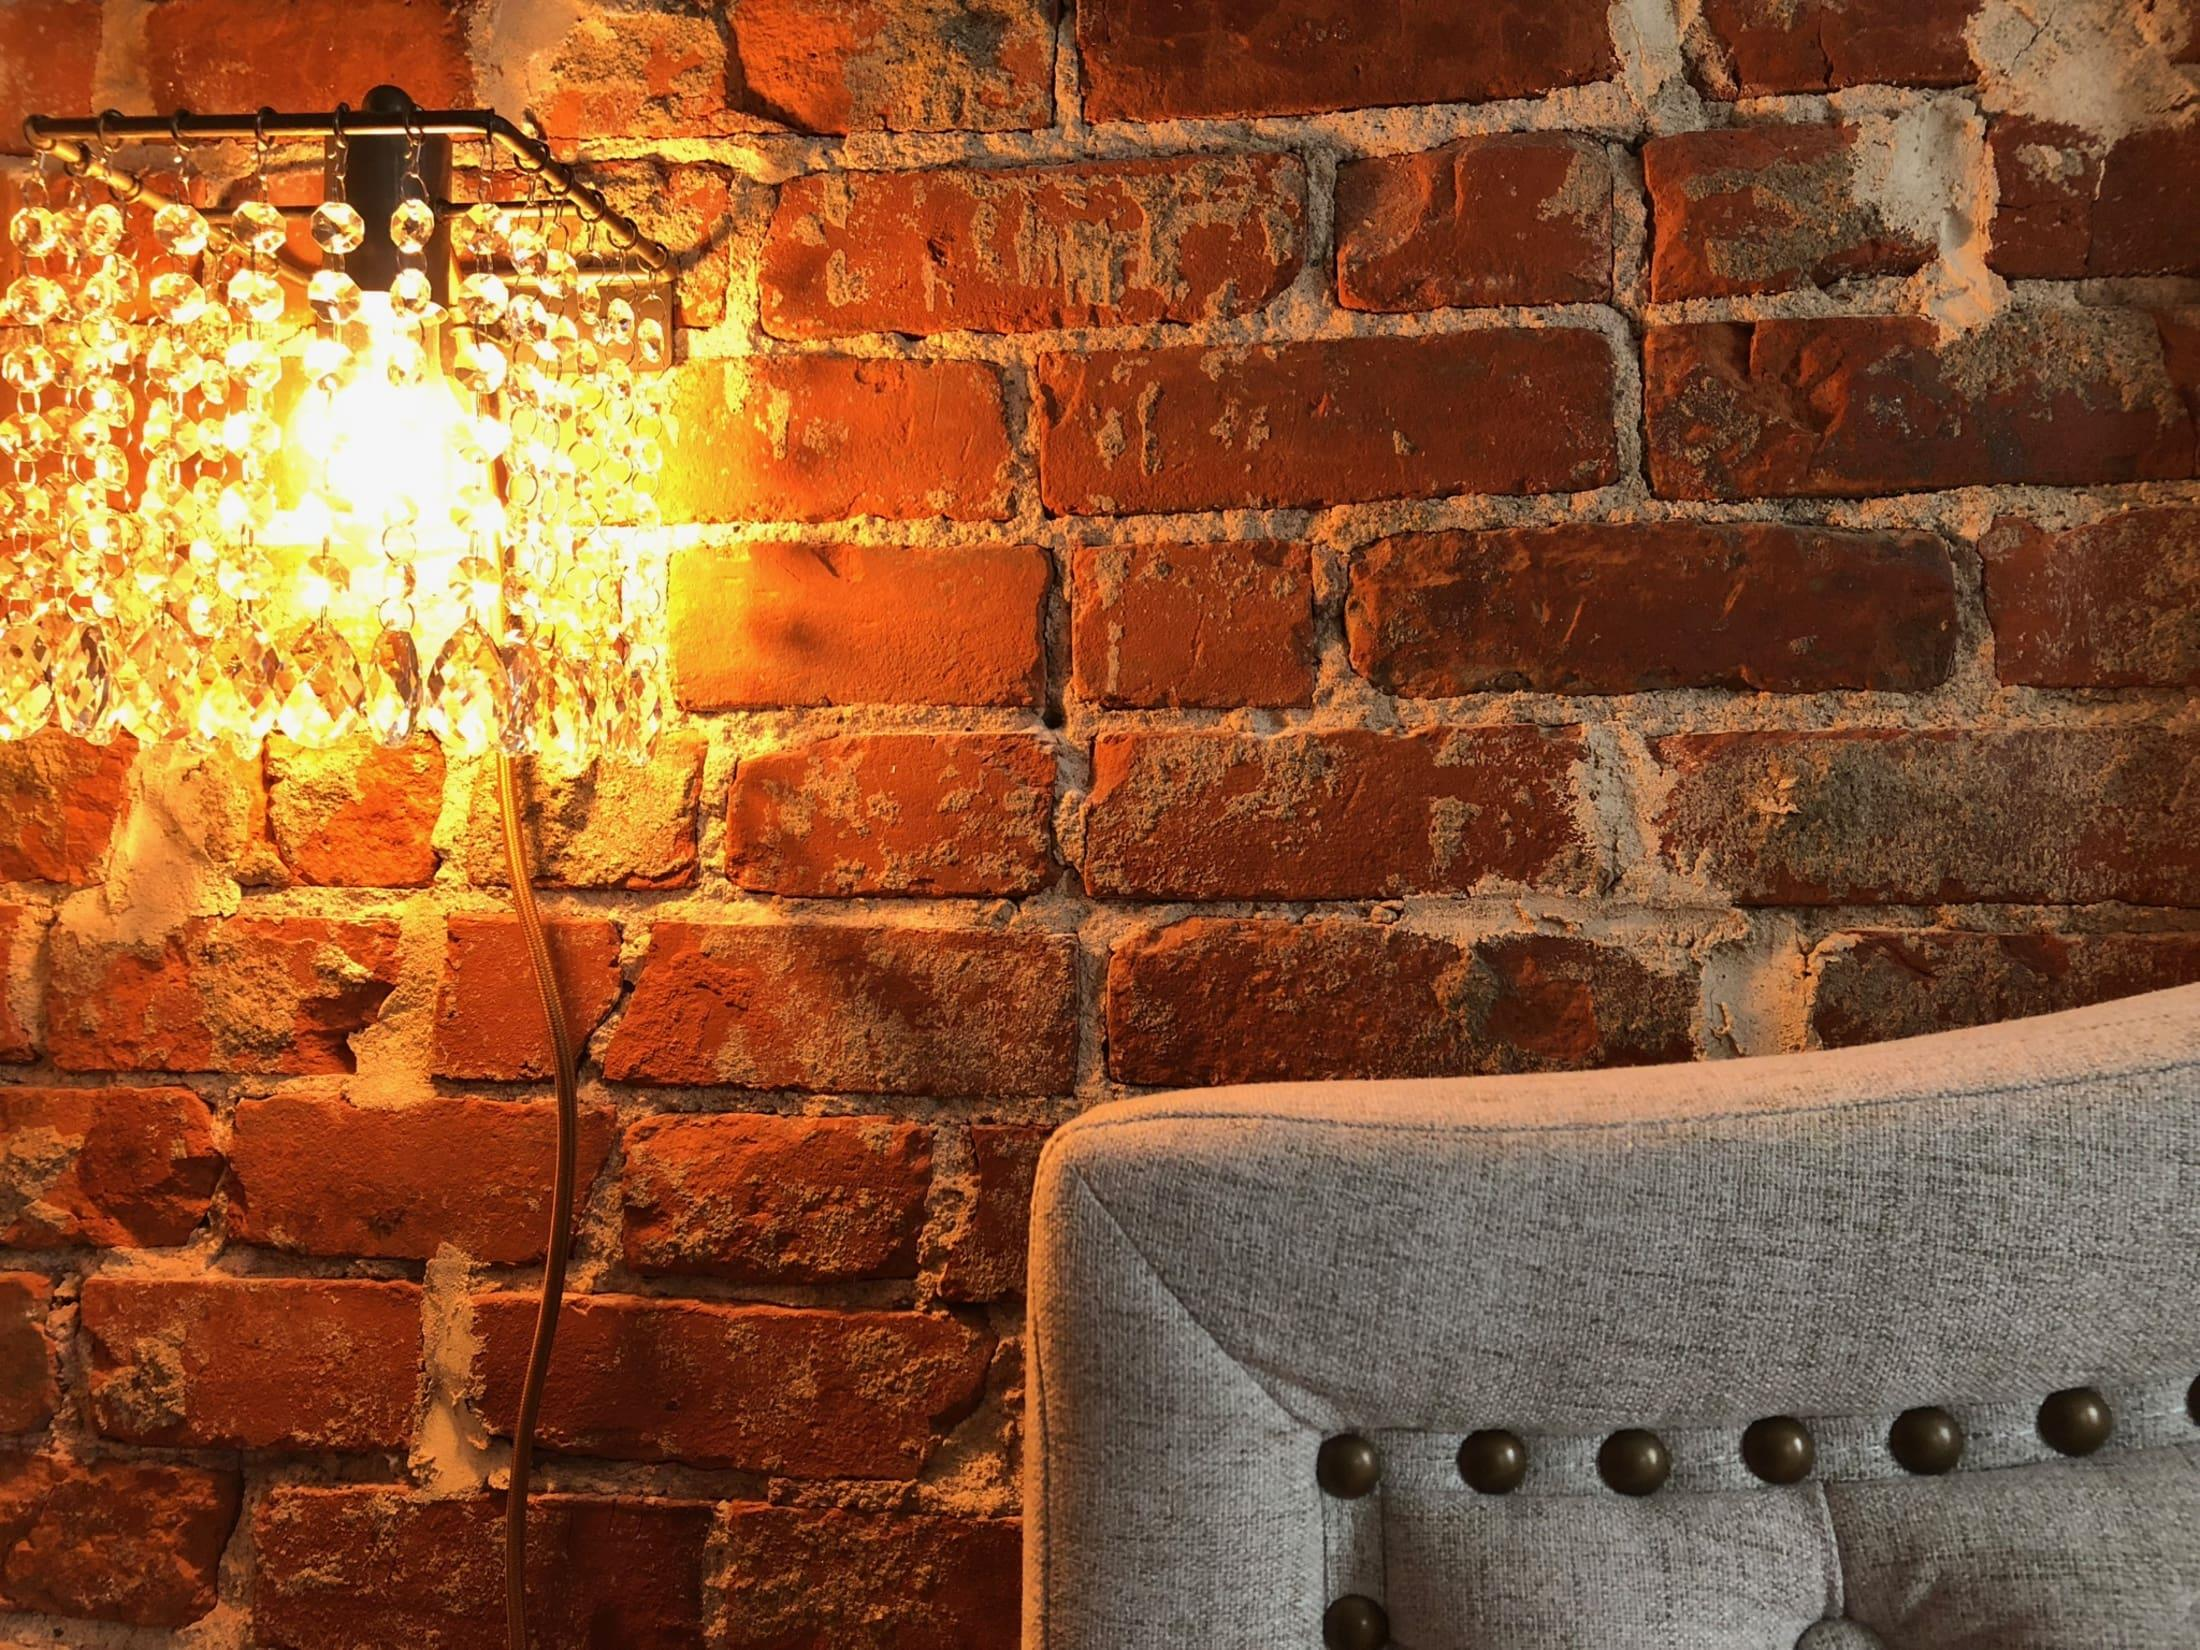 square-crystal-chandelier-on-brick-wall.jpg